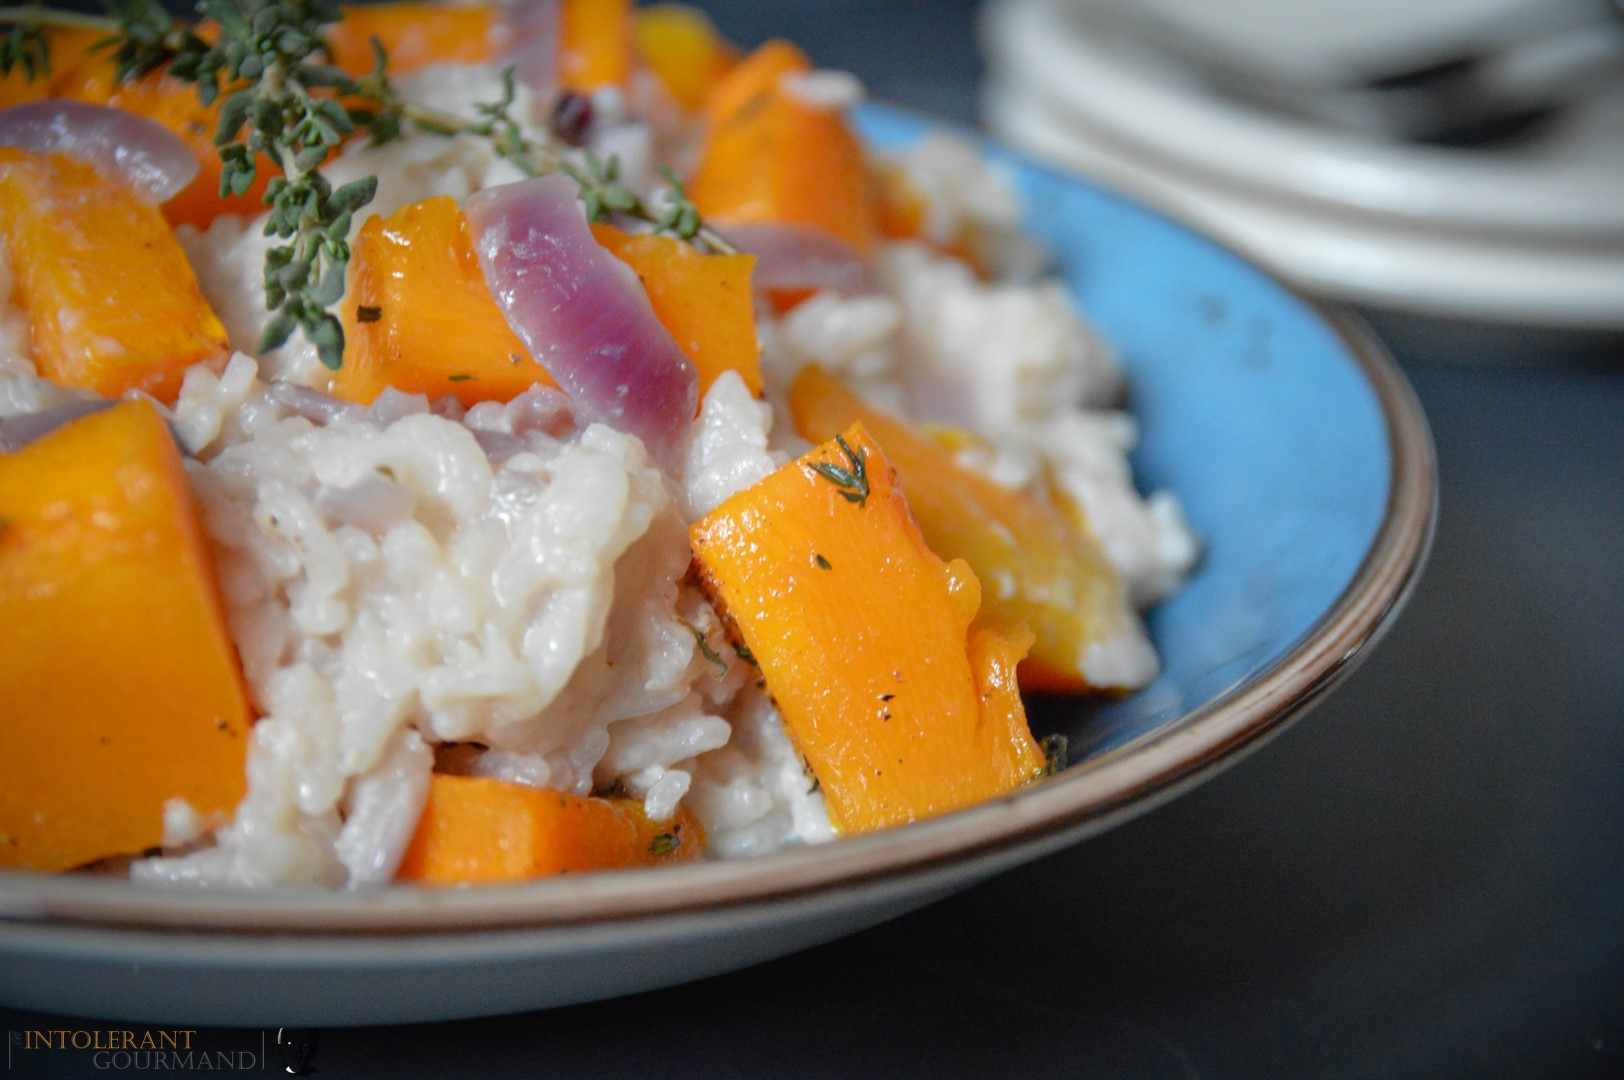 The Best Pumpkin Risotto - this vibrant dish is gluten-free and bursting full of flavour! Made using a2Milk so it's easier to digest too! www.intolerantgourmand.com